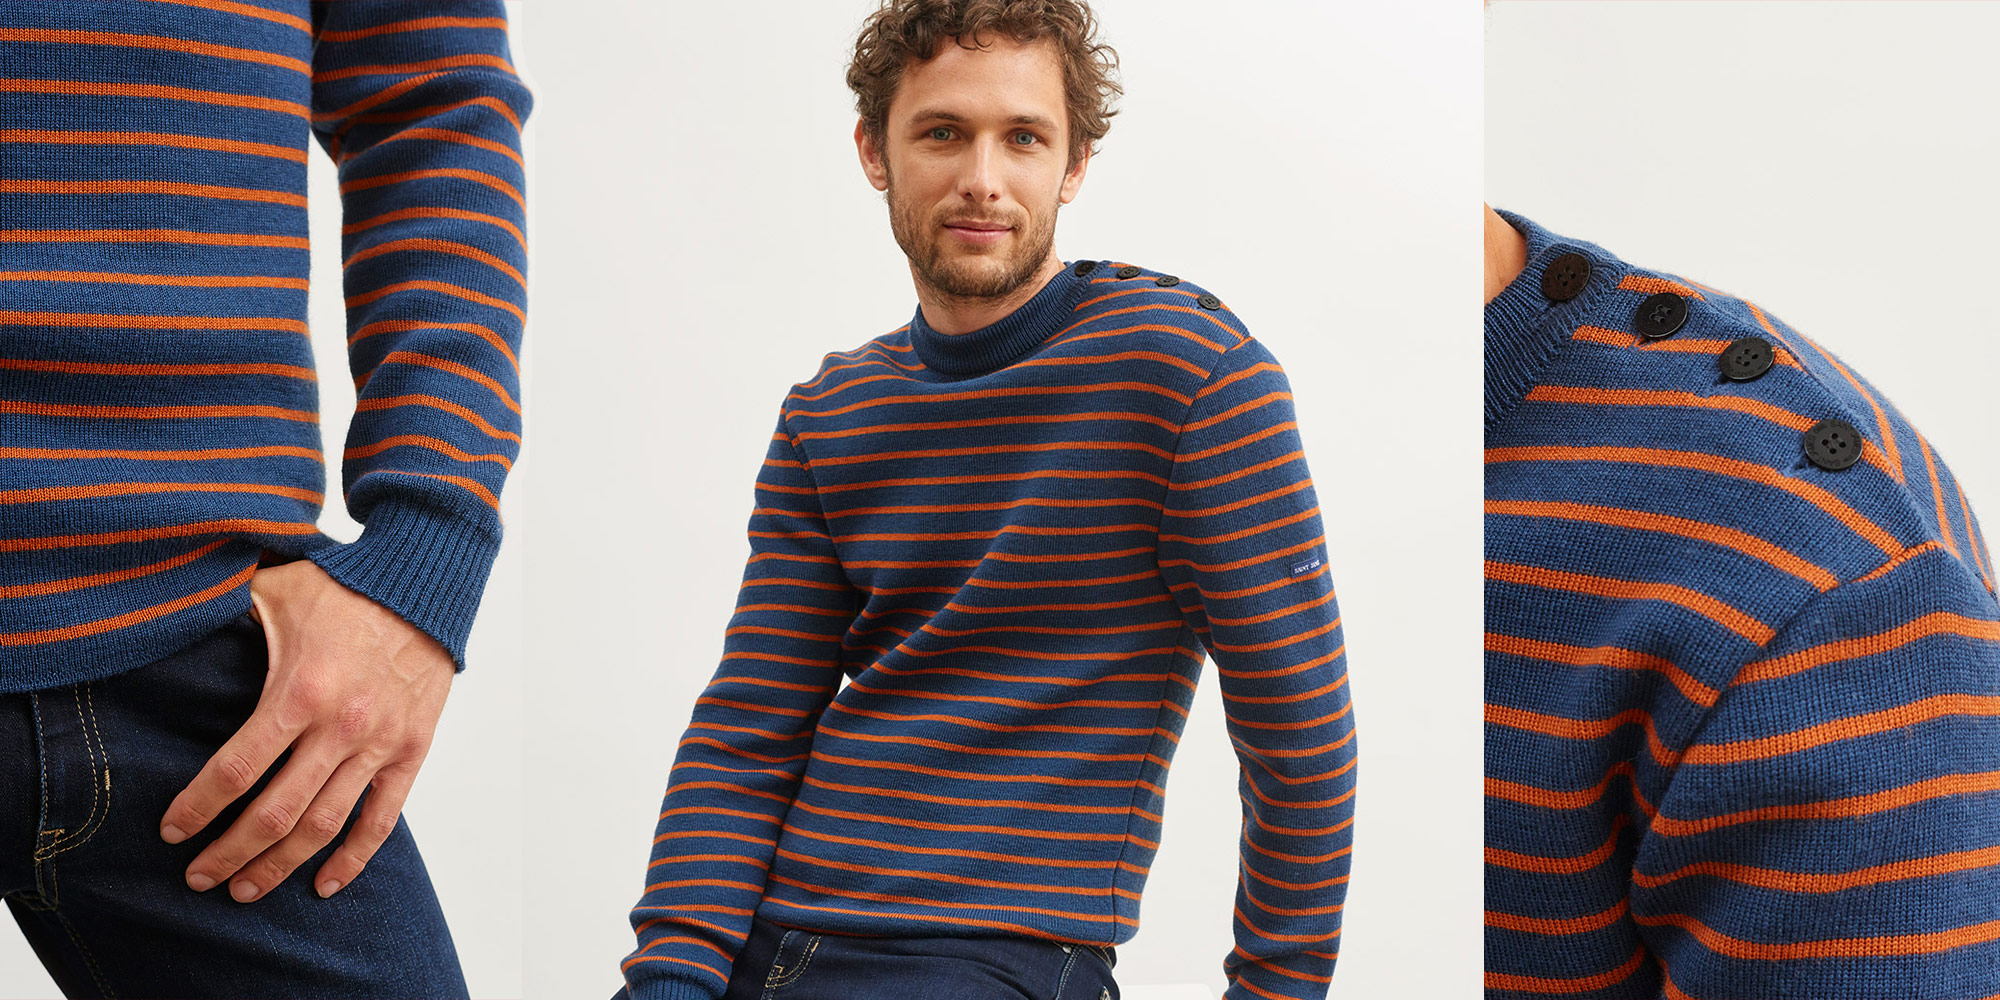 Born on the open water Matelot 1 R 